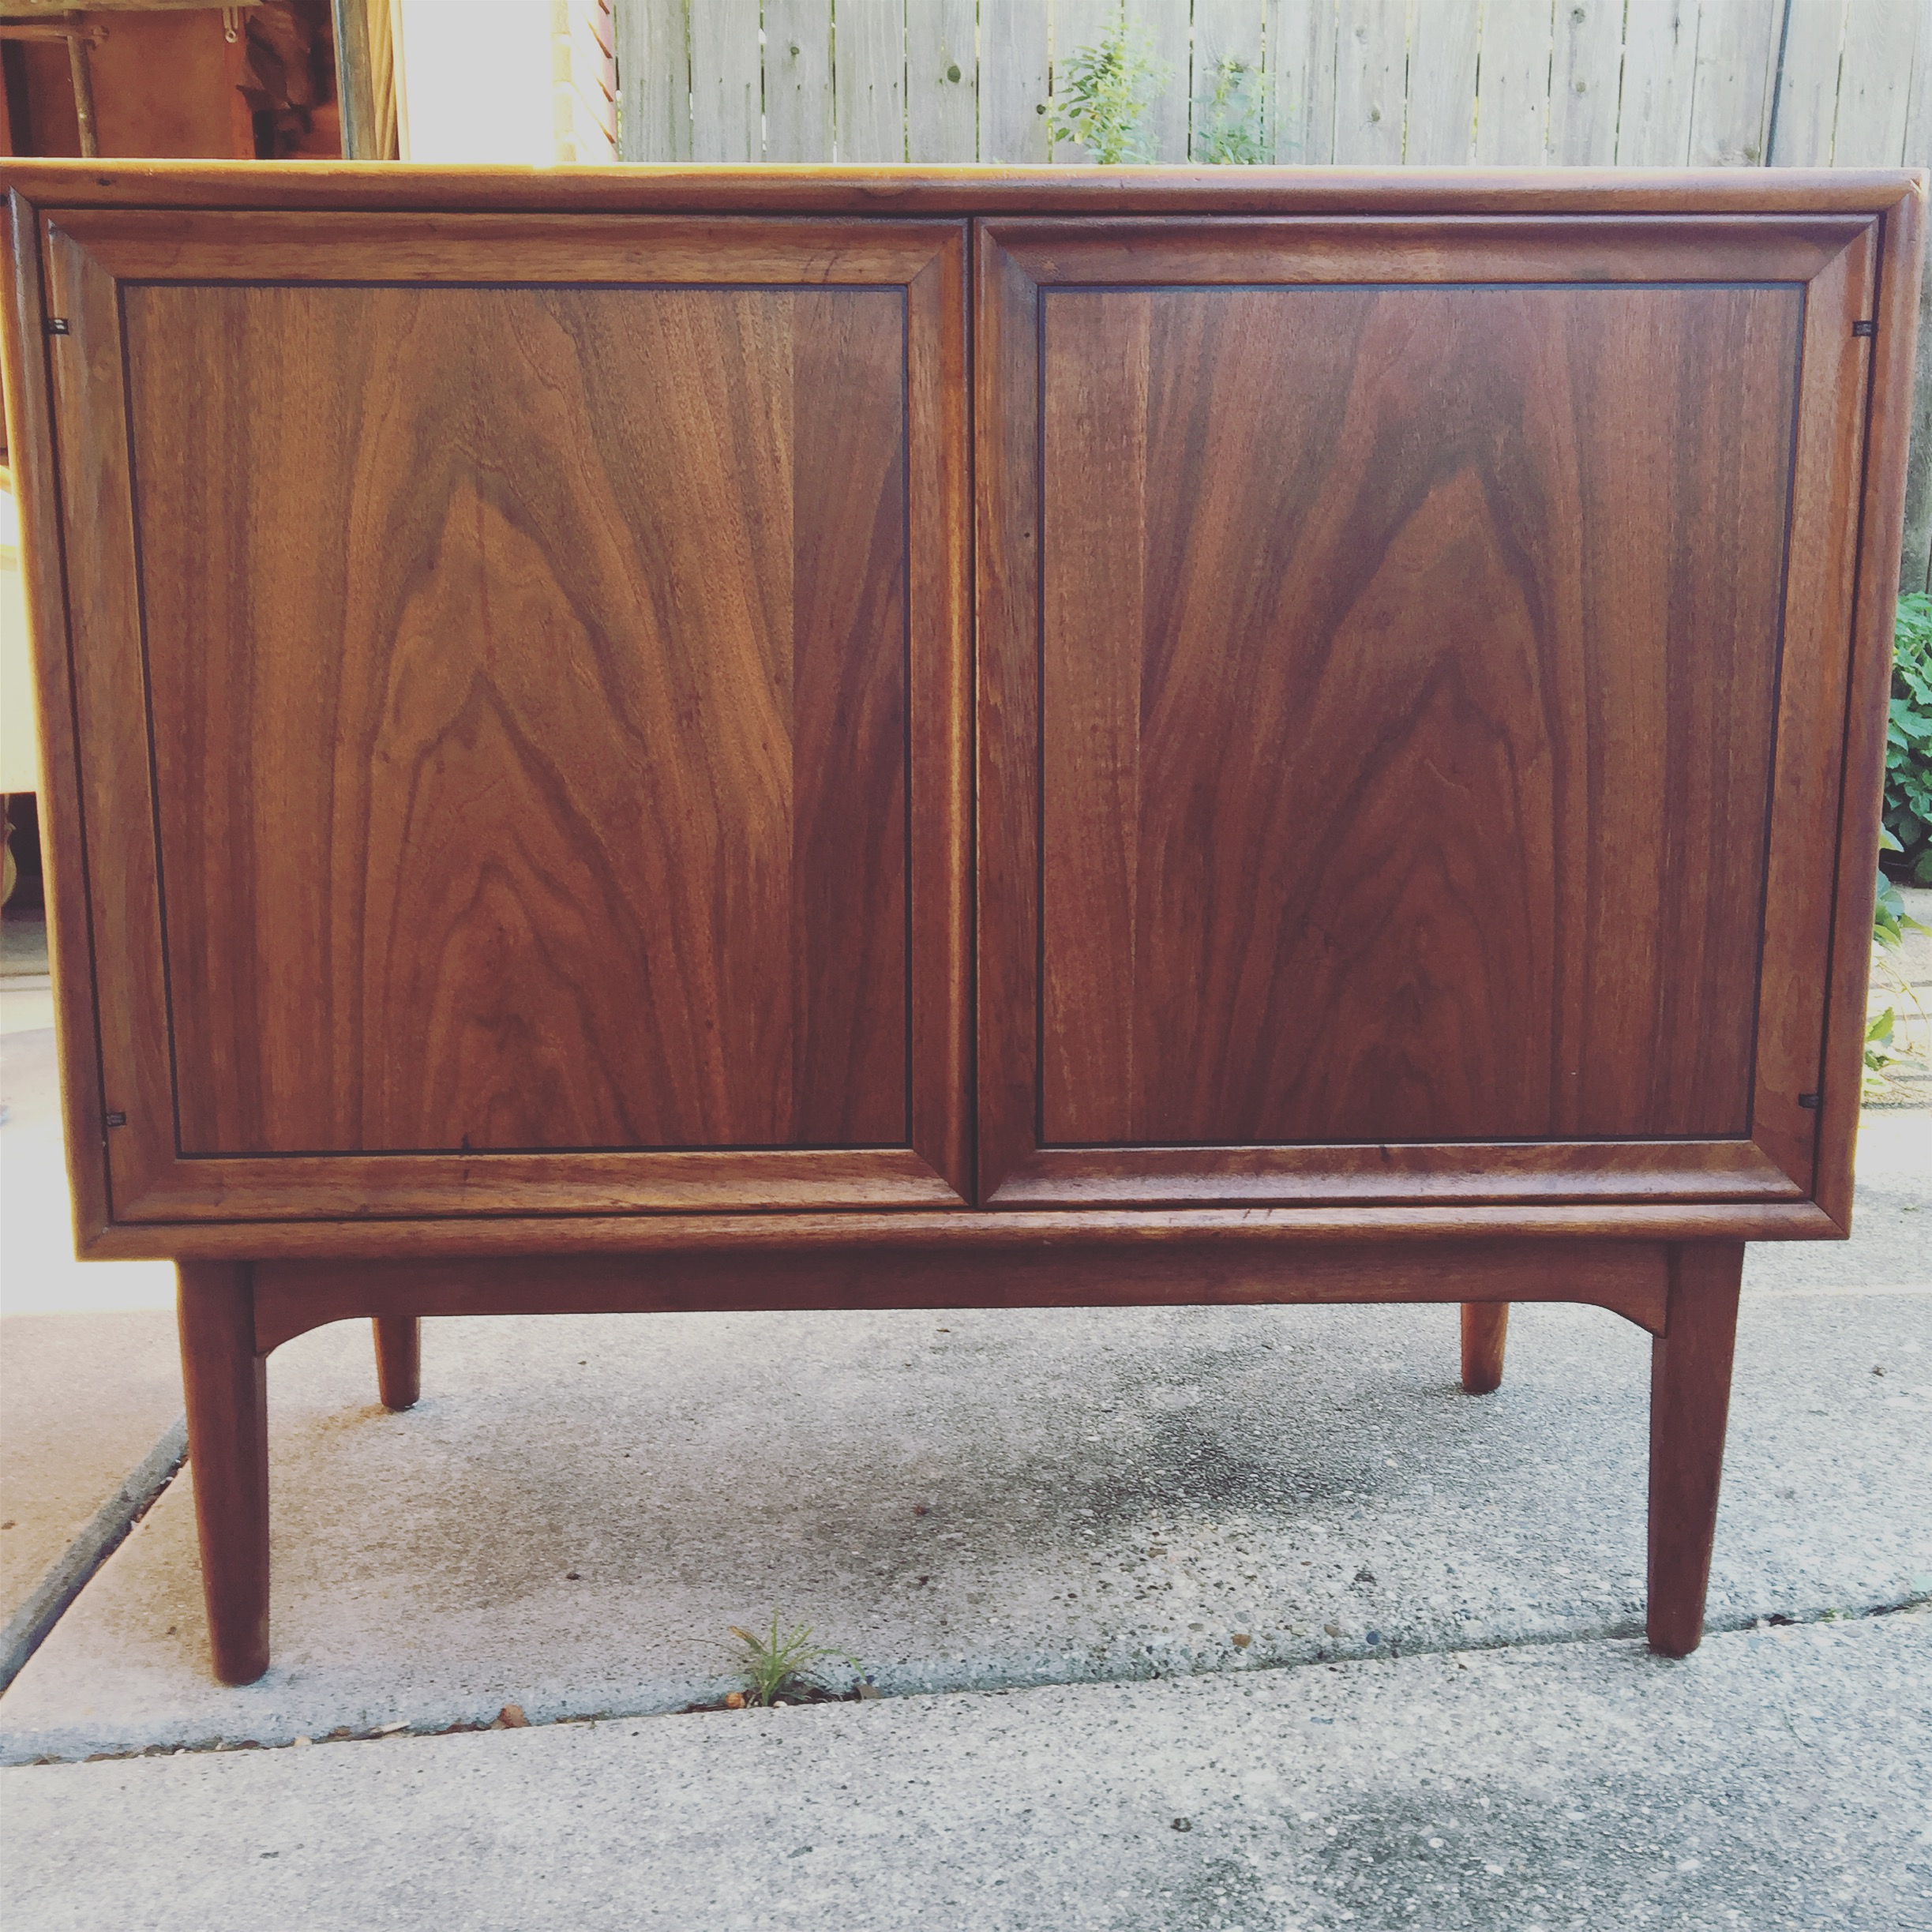 So excited to refinish this top! This is a beautiful Drexel Declaration cabinet, or, mini credenza.